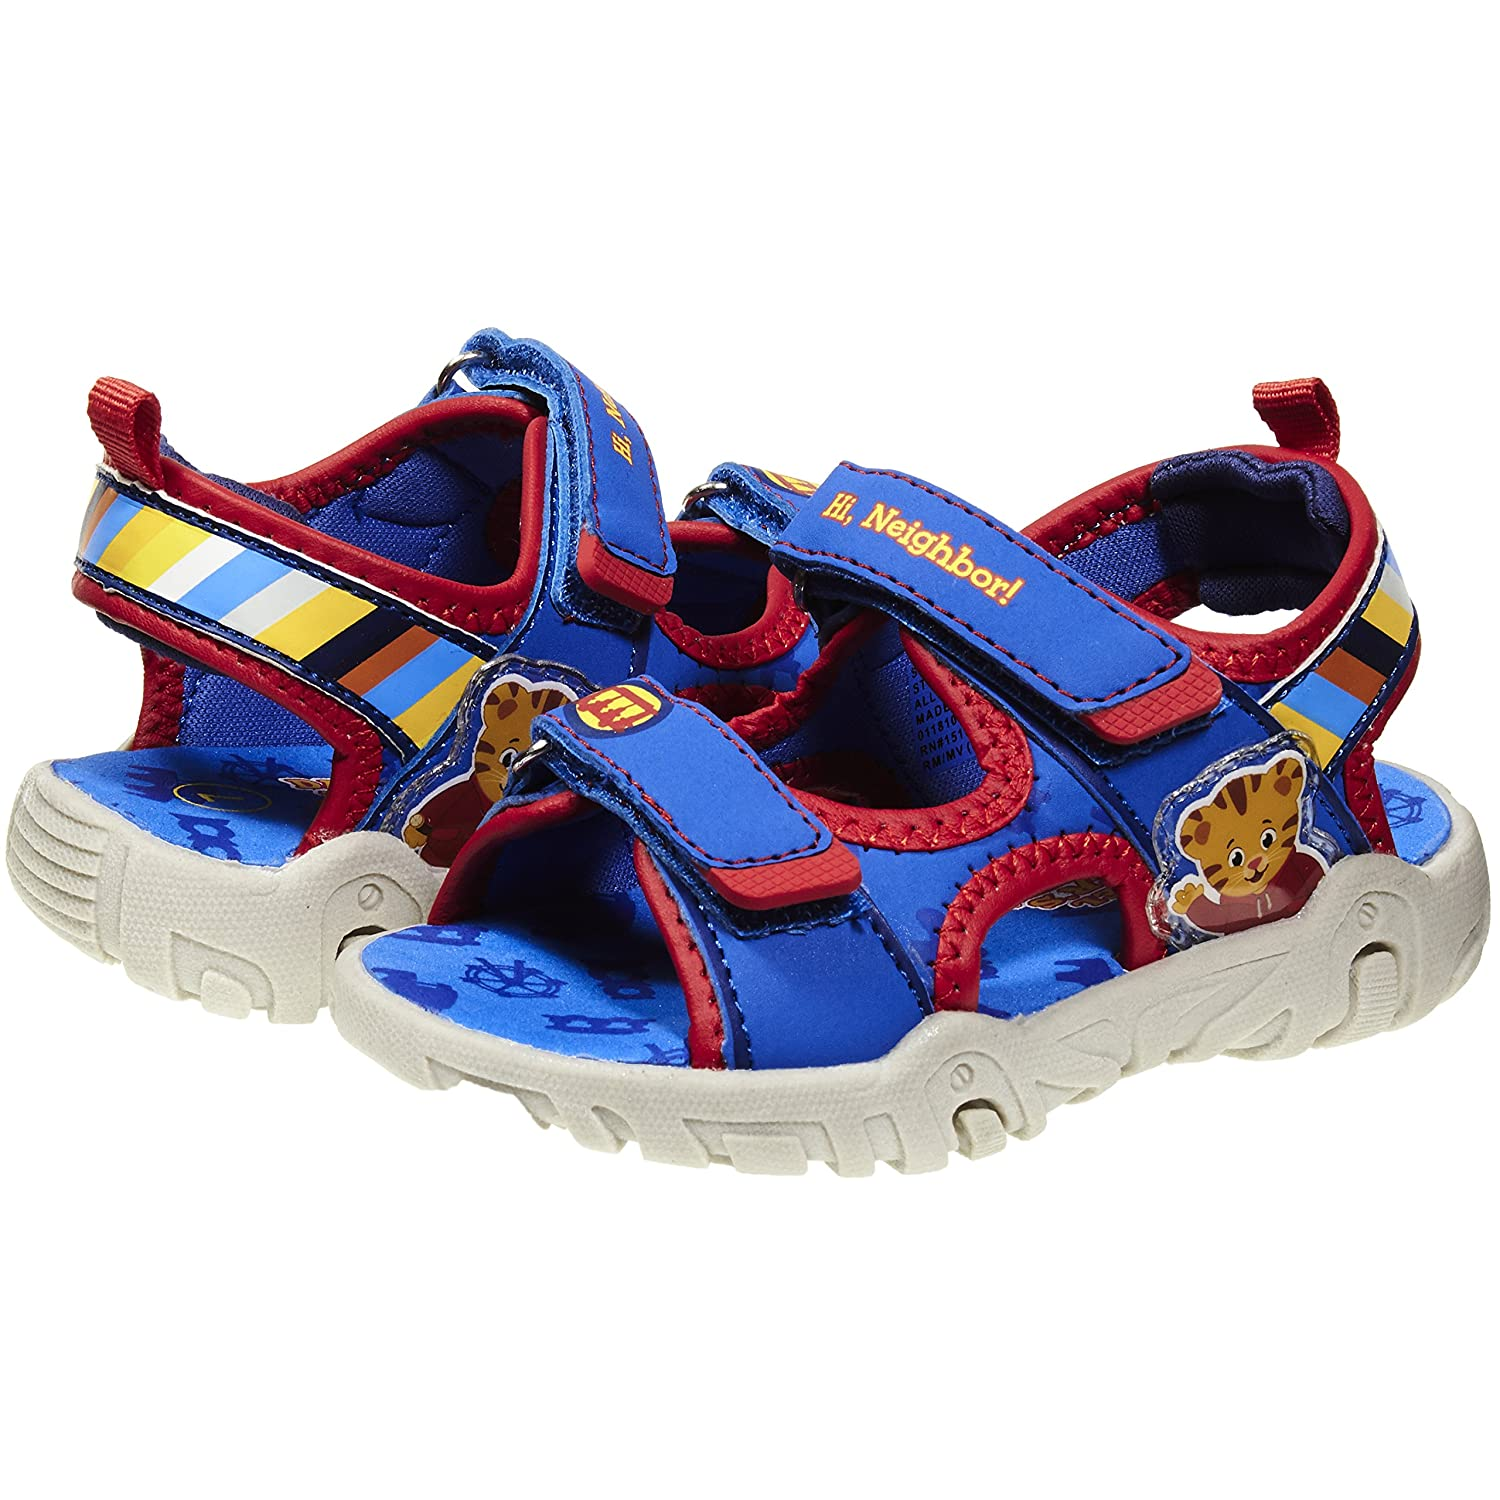 Daniel Tiger Blue Colored Boys TPR Sole Sandals, Available in for Kids DTX012/1/E-BLU-5